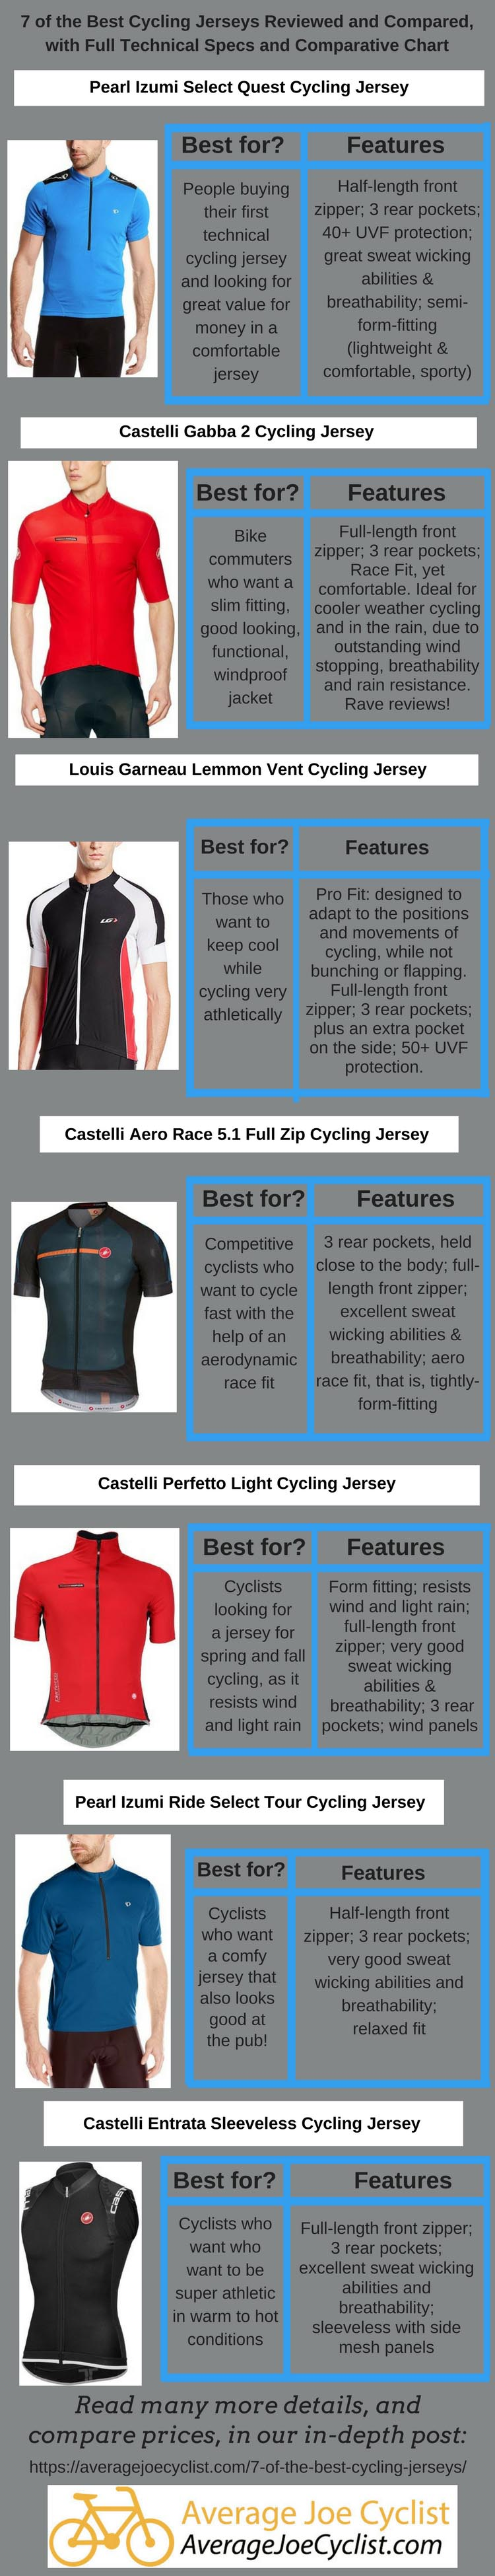 7 of the Best Cycling Jerseys